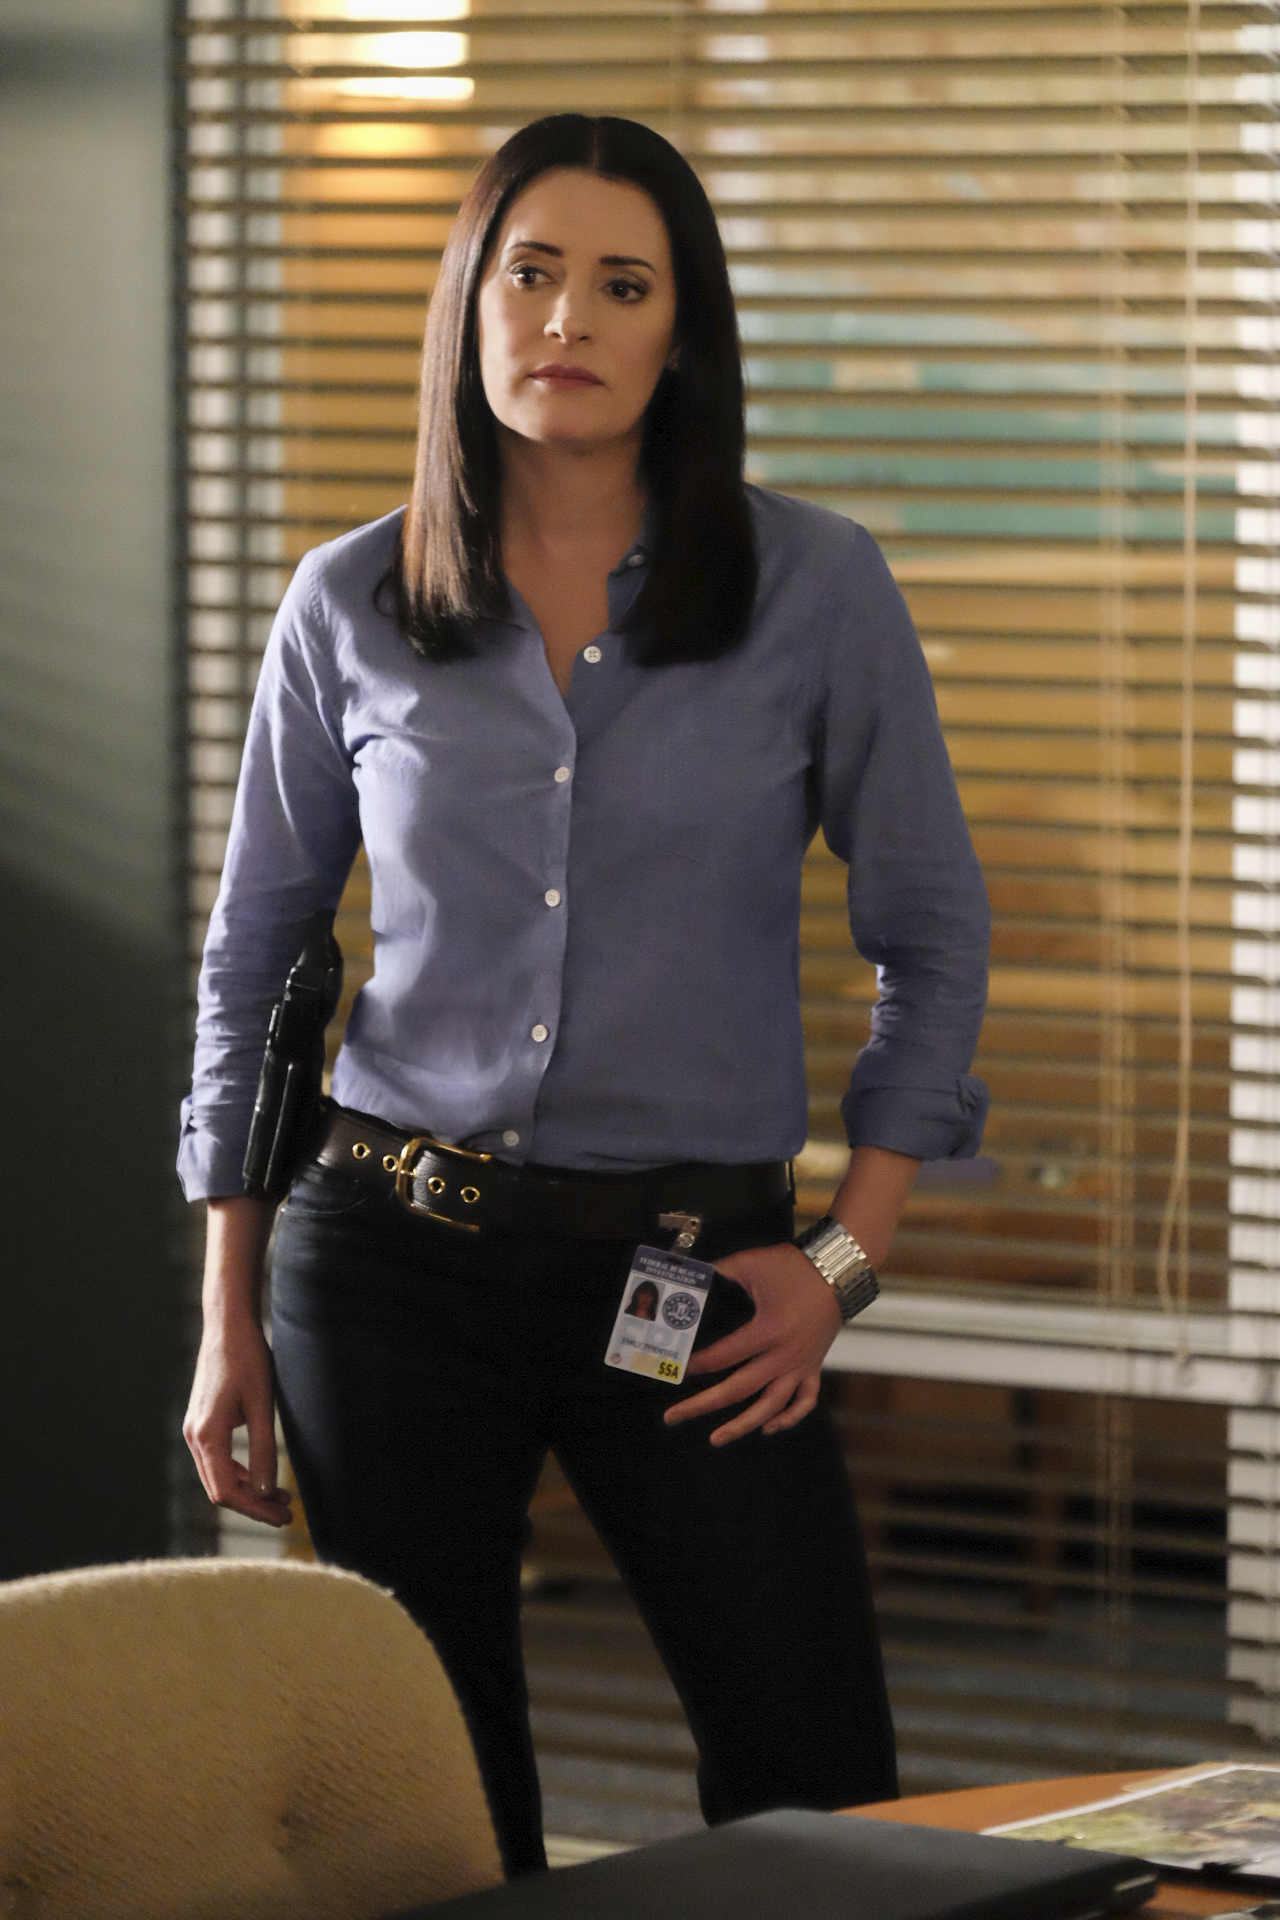 Prentiss considers alternative suspects.